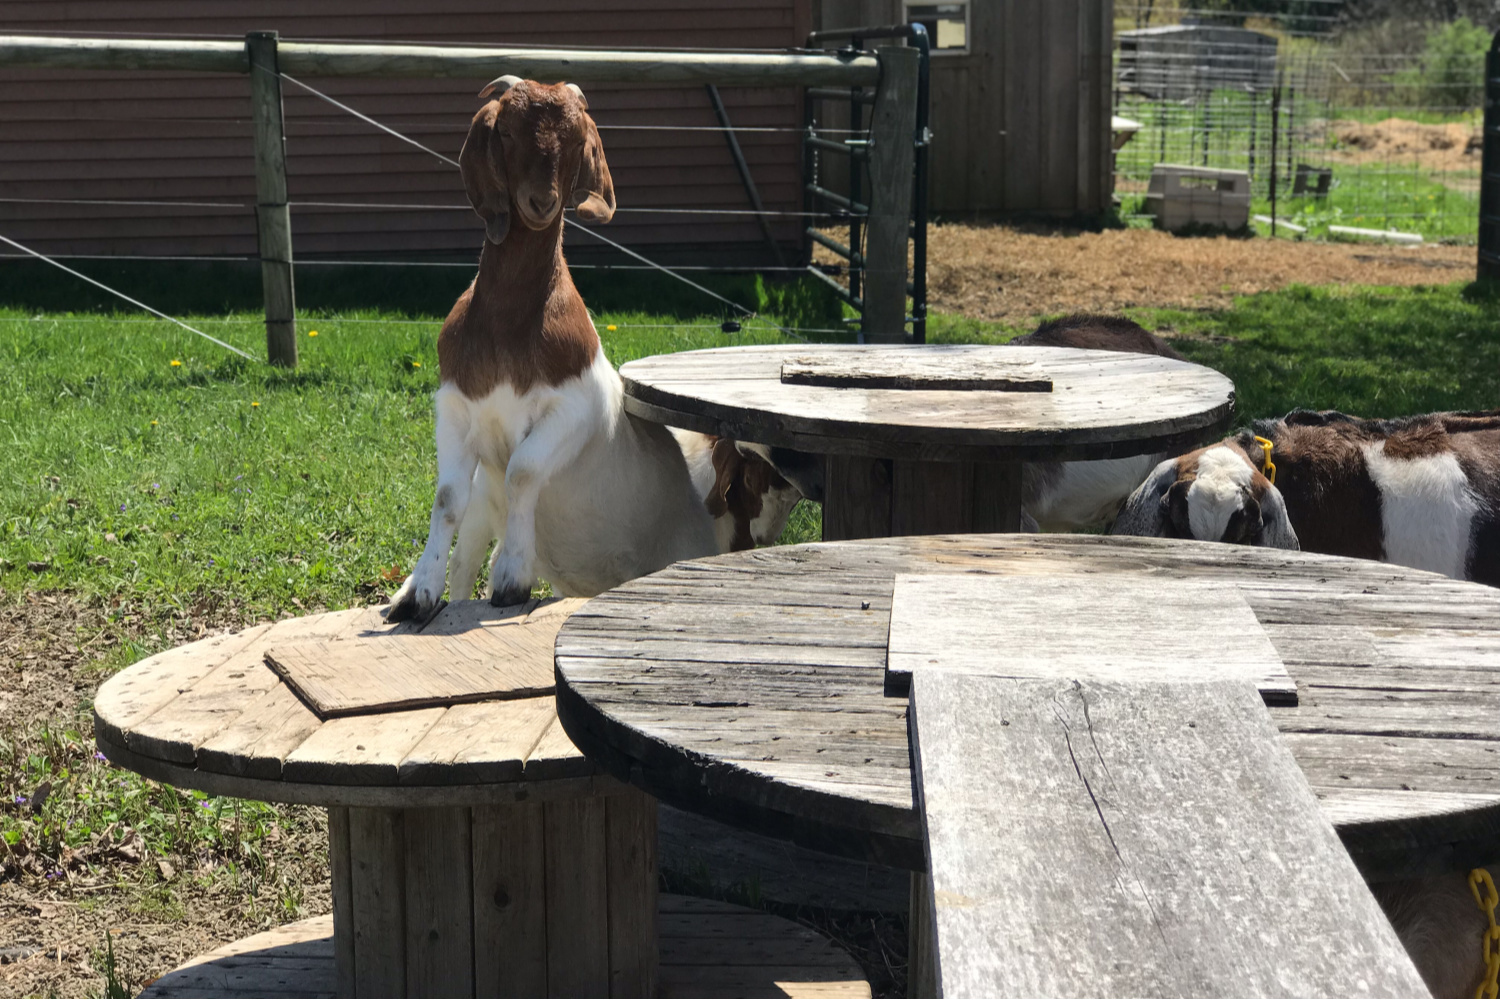 Get your goats out and exercising with this free DIY goat playground.